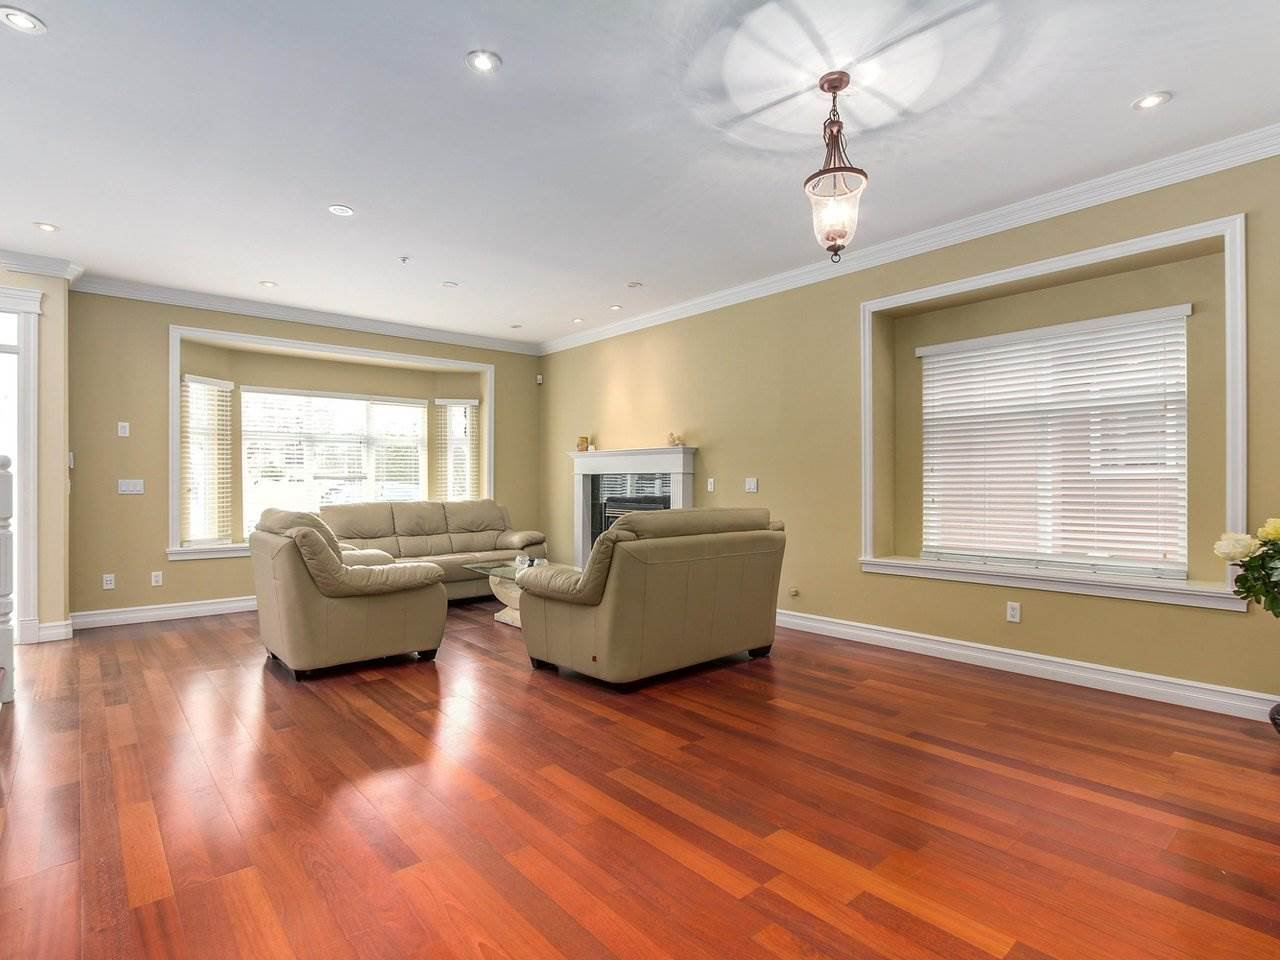 "Photo 5: Photos: 5749 CREE Street in Vancouver: Main House for sale in ""Main"" (Vancouver East)  : MLS®# R2241377"